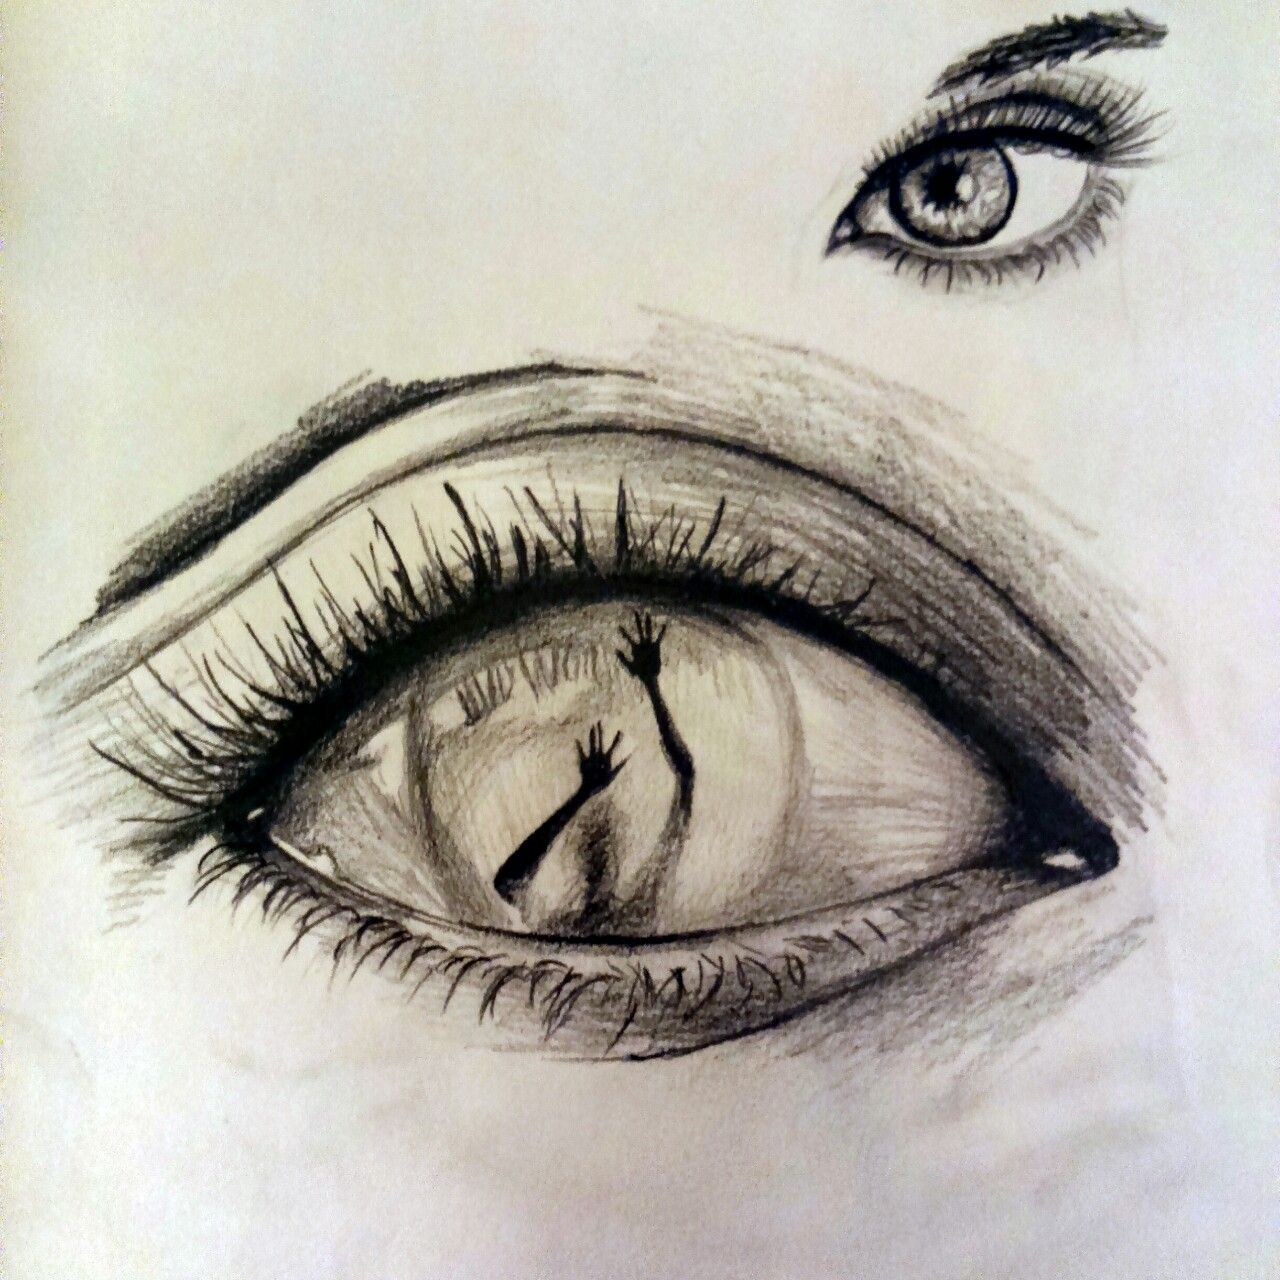 10 Wonderful Ideas For Drawings In Pencil pencil drawing ideas and pencil sketch idea pic photos cool pencil